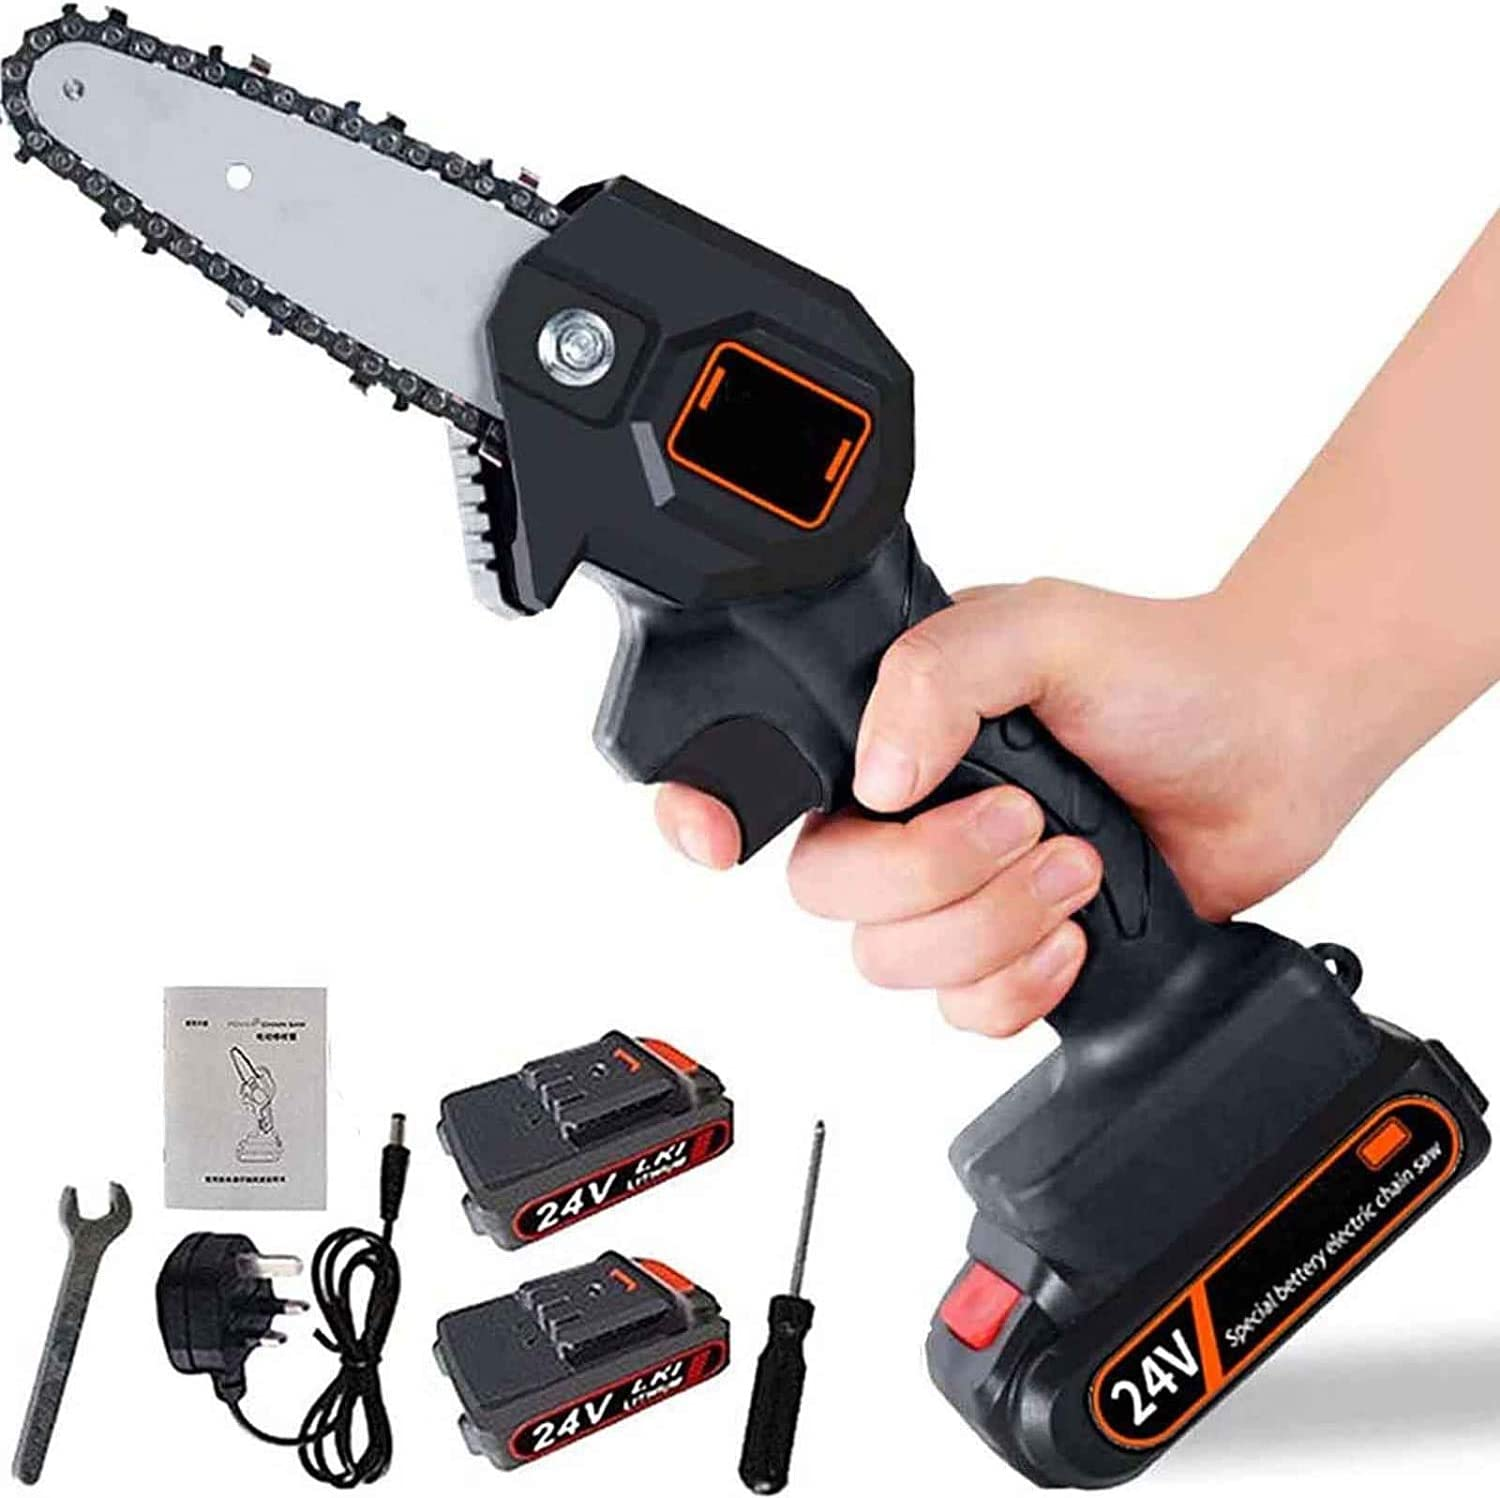 Mini Electric Saw,Electric Branch Cutter,Mini Chainsaw,Handheld Cordless Chainsaw with Charger and 2 Battery 24v Battery Handheld Pruning Saw,Adjustable Cutting Speed for Wood Cutting Black